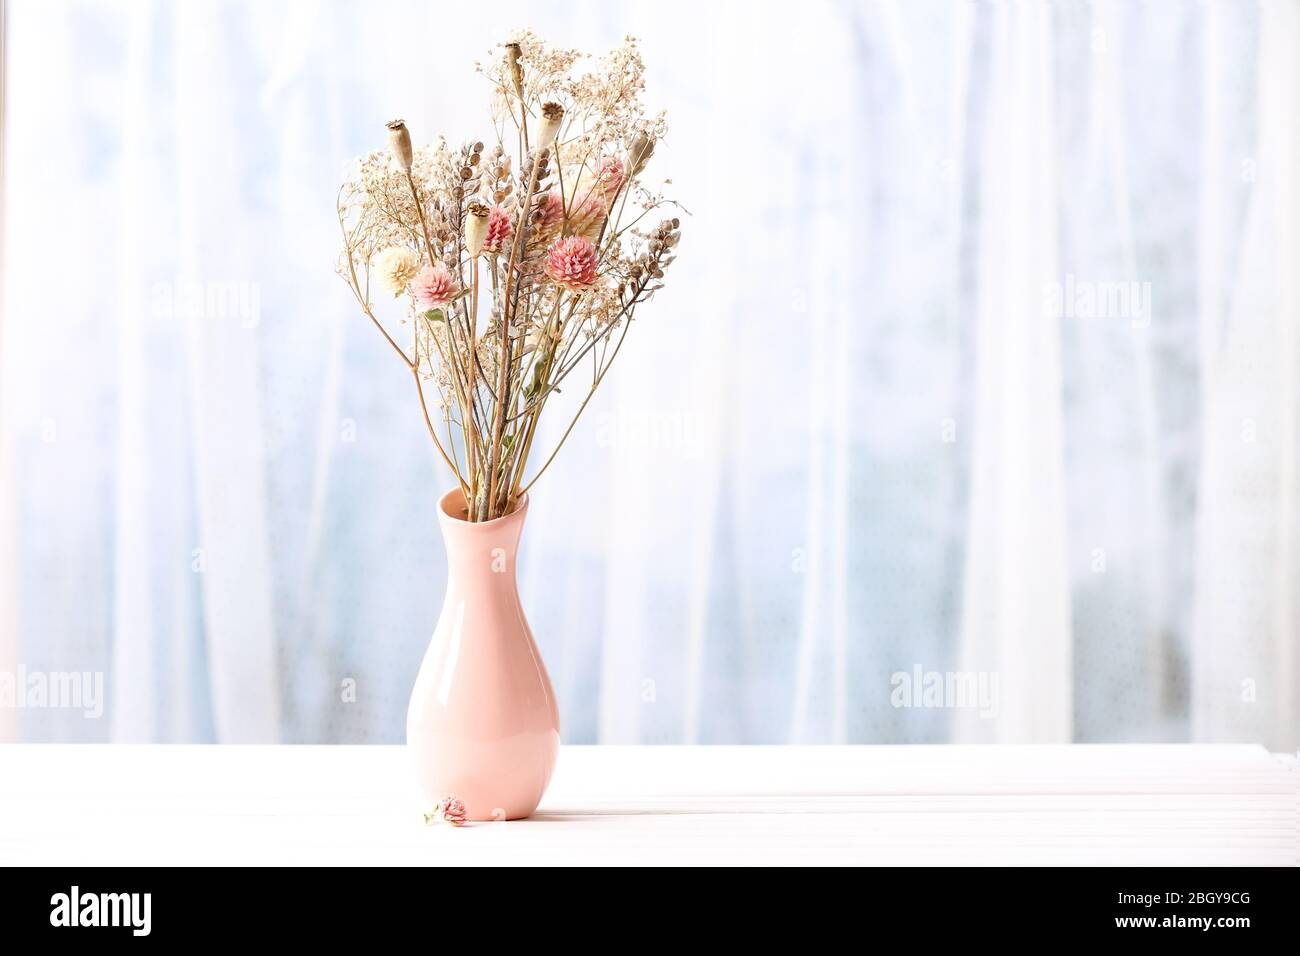 Bouquet Of Dried Flowers In Vase On Light Background Stock Photo Alamy